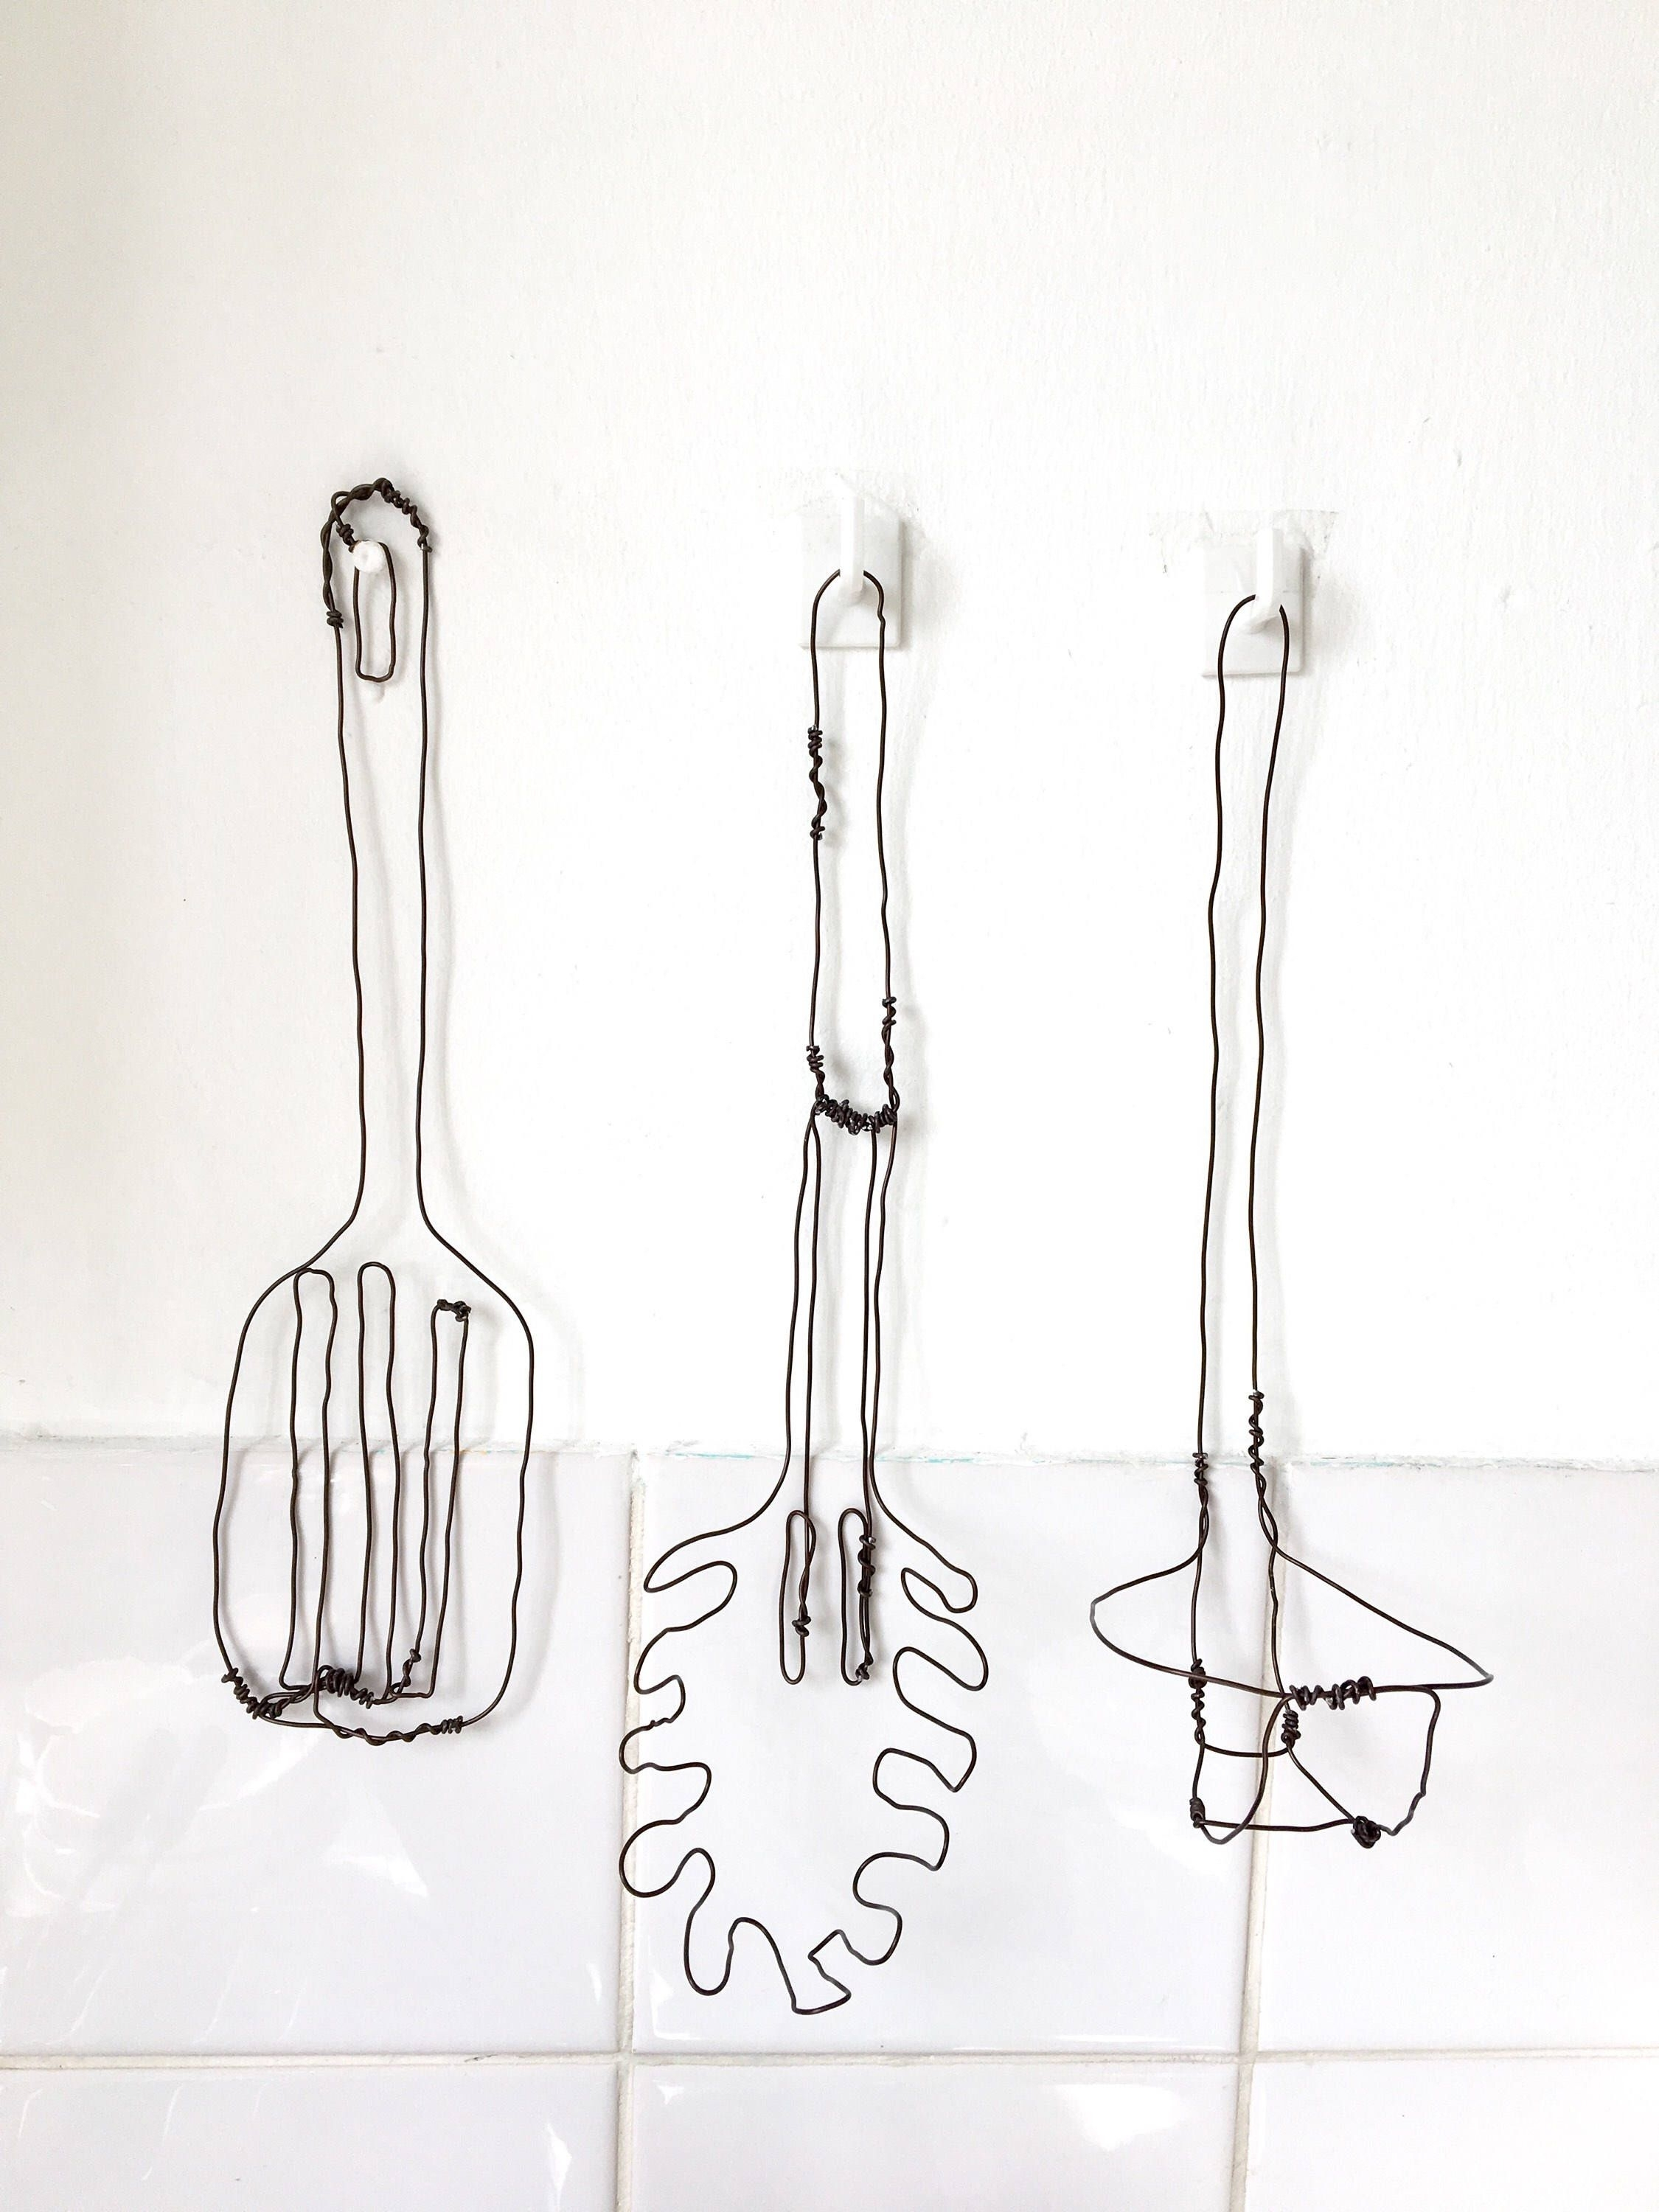 Kitchen Utensils  Kitchen Wall Art  Kitchen Decor  Wire Utensils Pertaining To Most Recently Released Wire Wall Art (View 10 of 20)